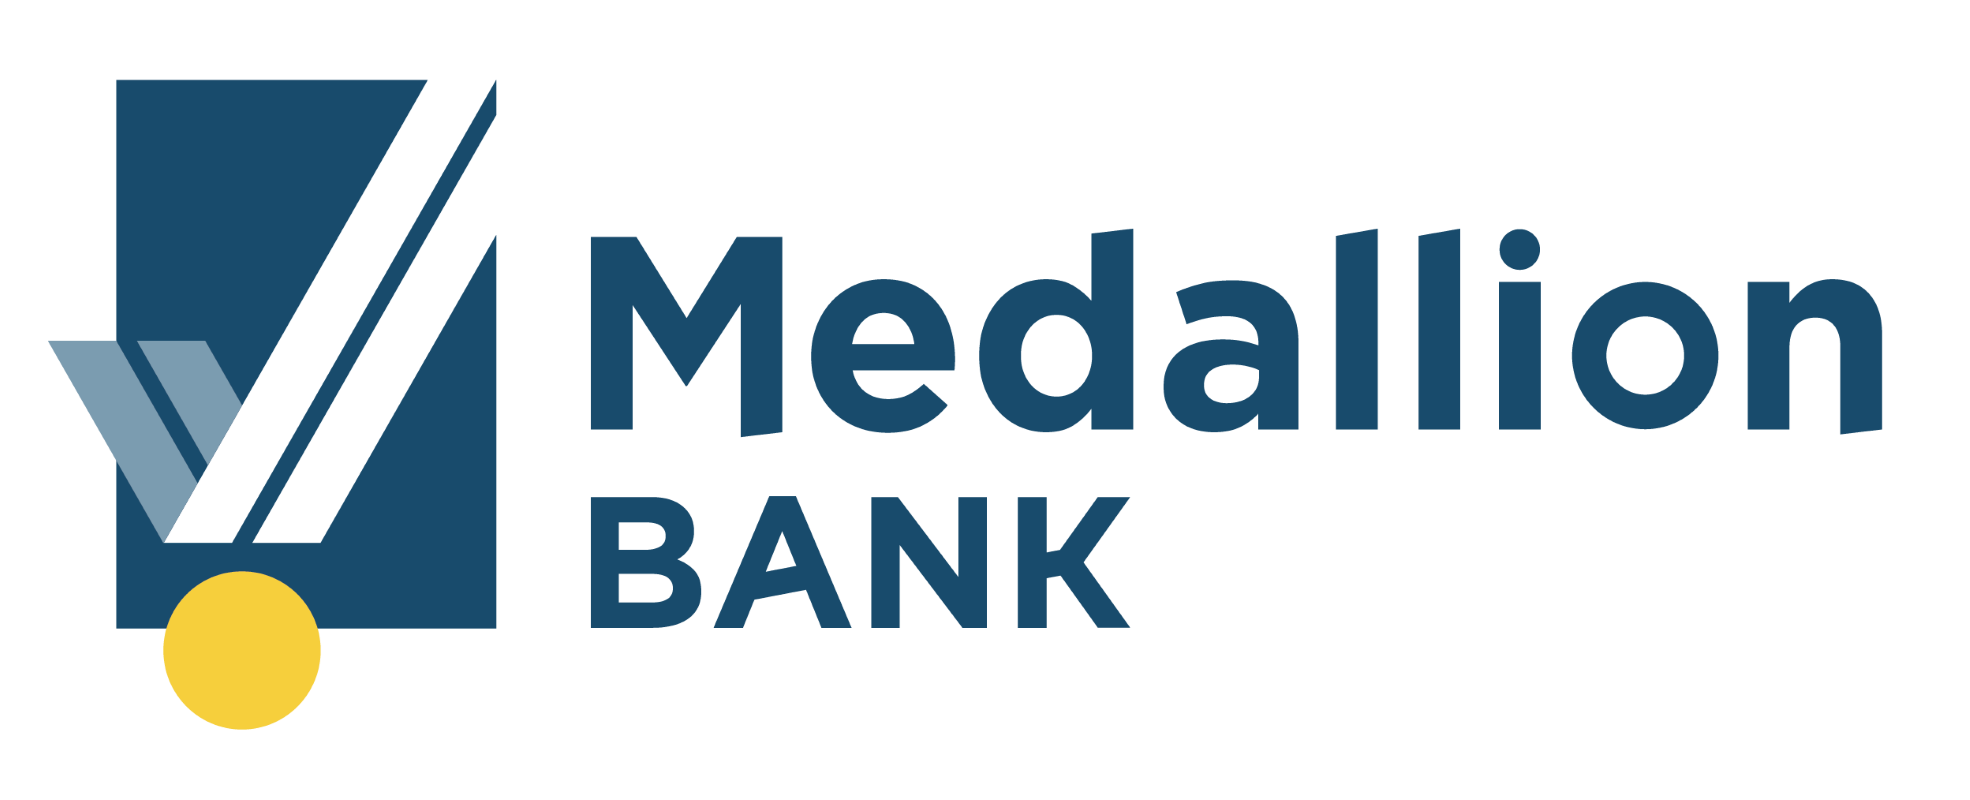 Medallion Bank